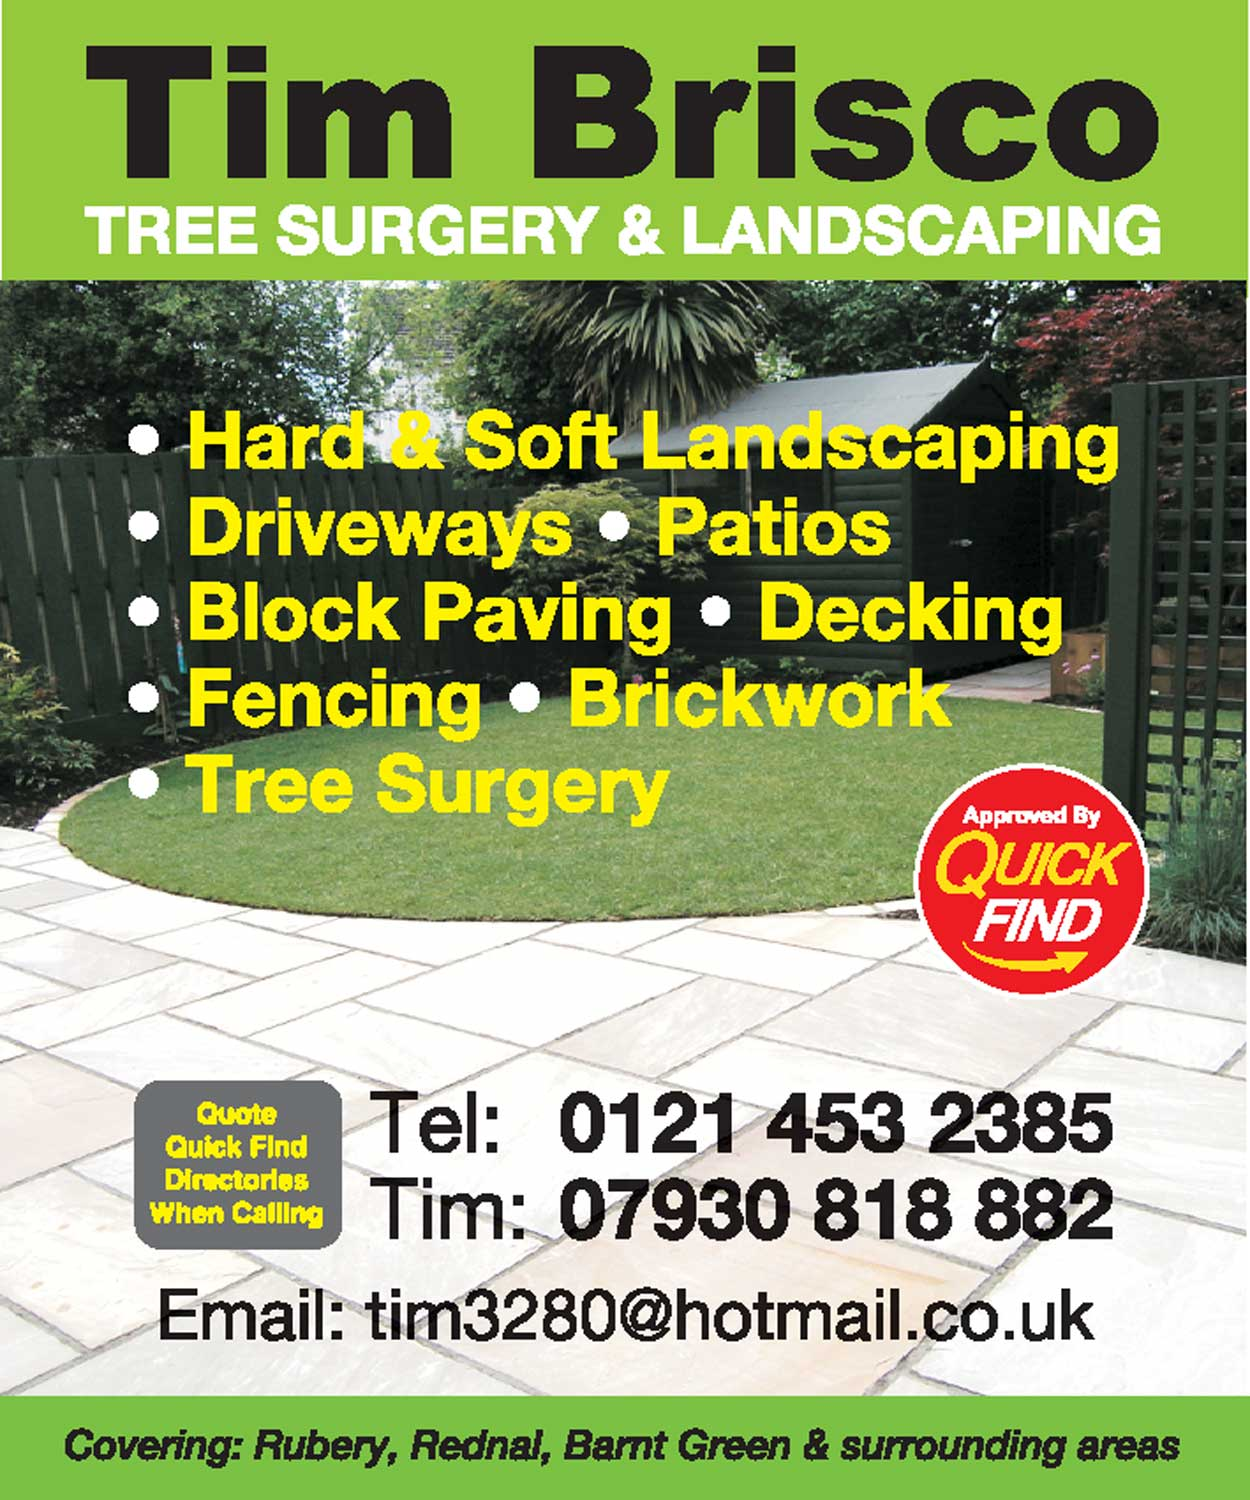 Tim Brisco Tree Surgeon